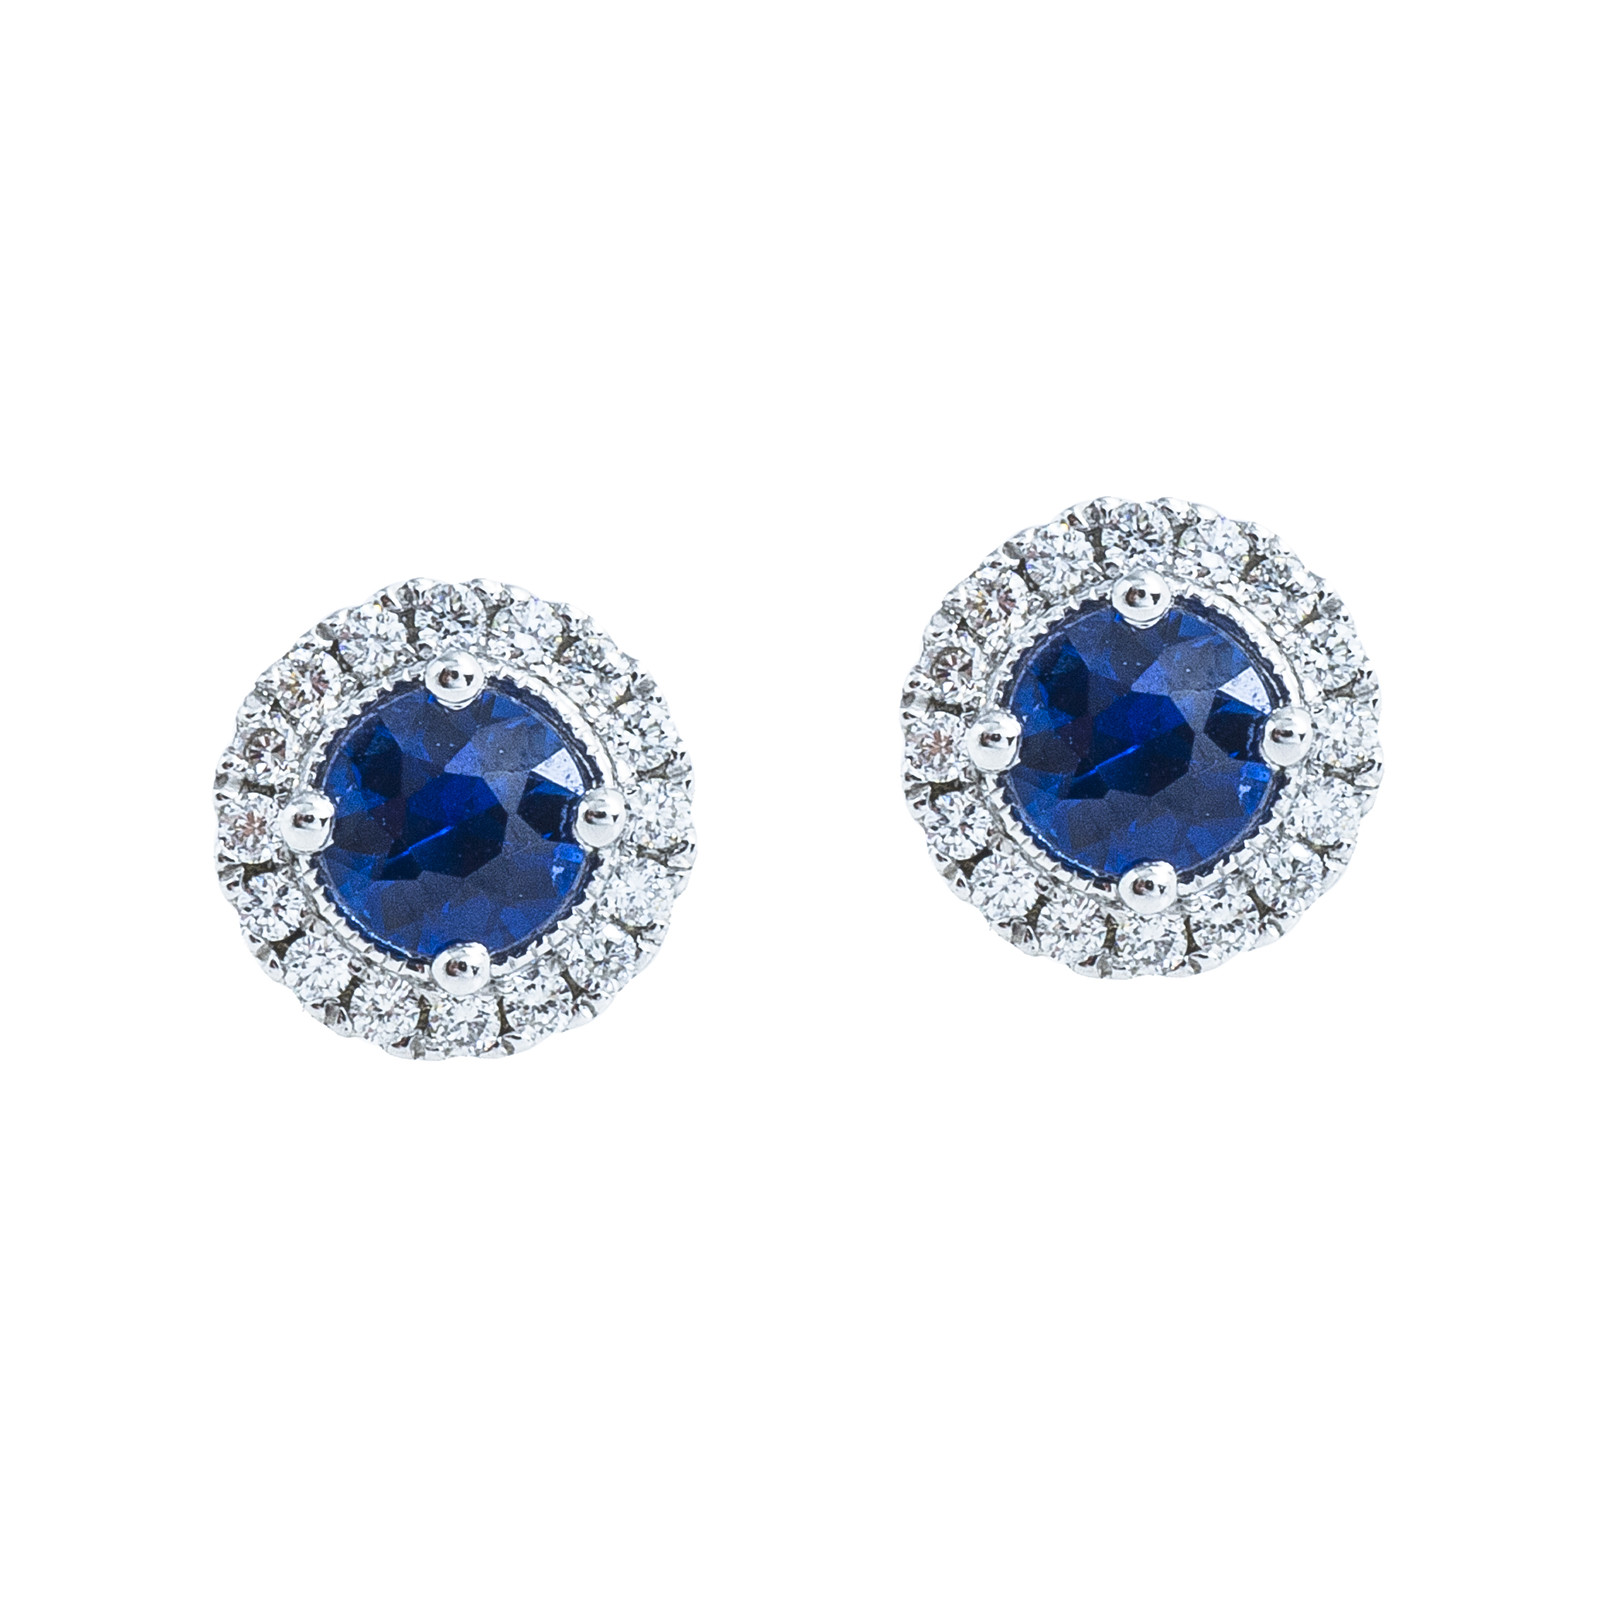 New 0.78 CTW Blue Sapphire & Diamond Stud Earrings